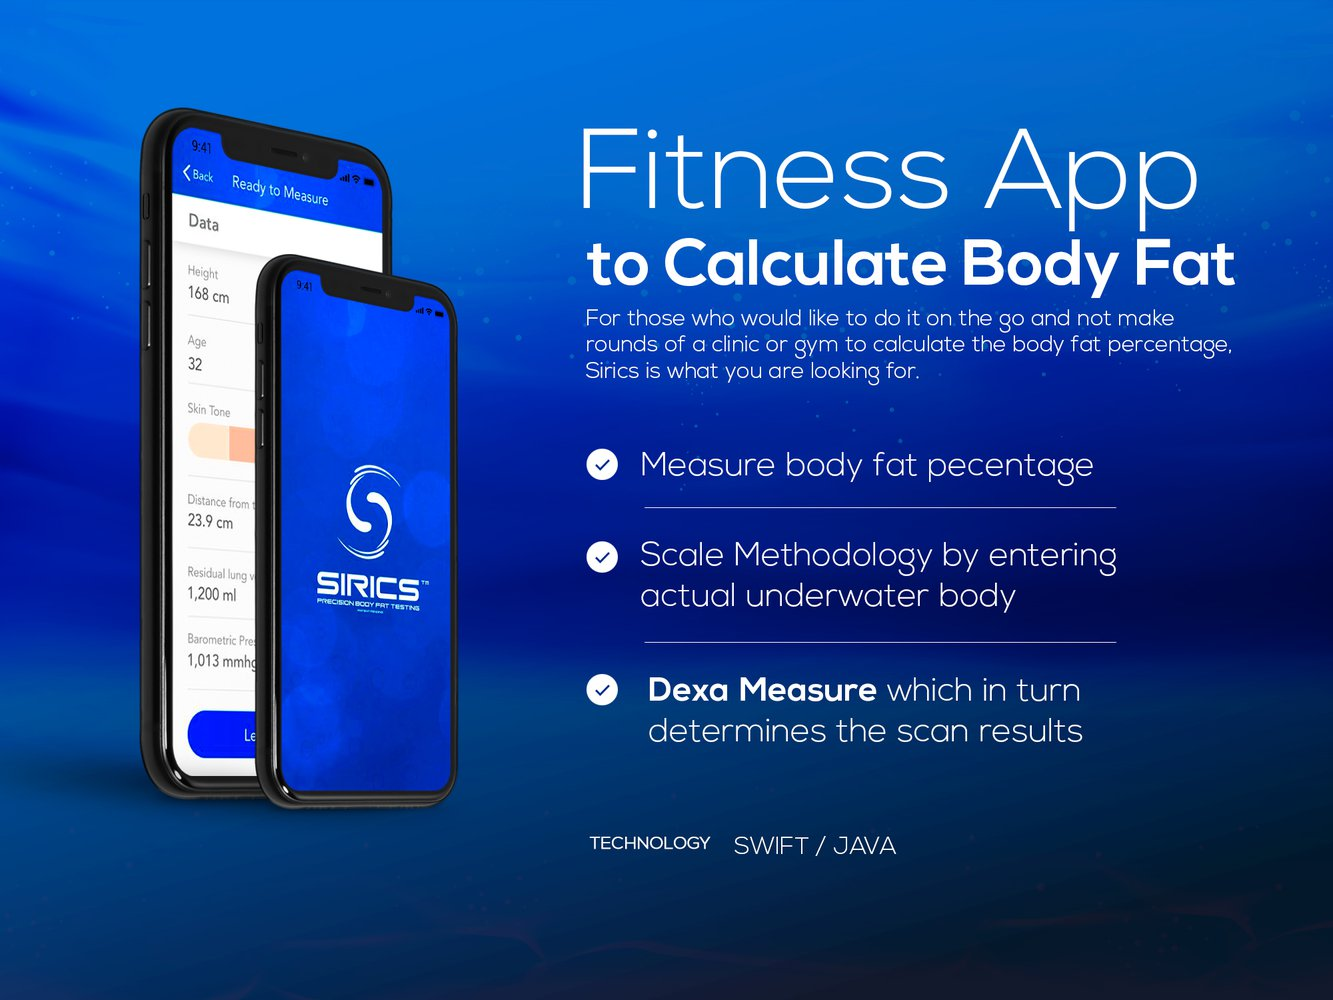 Fitness App to Calculate Body Fat